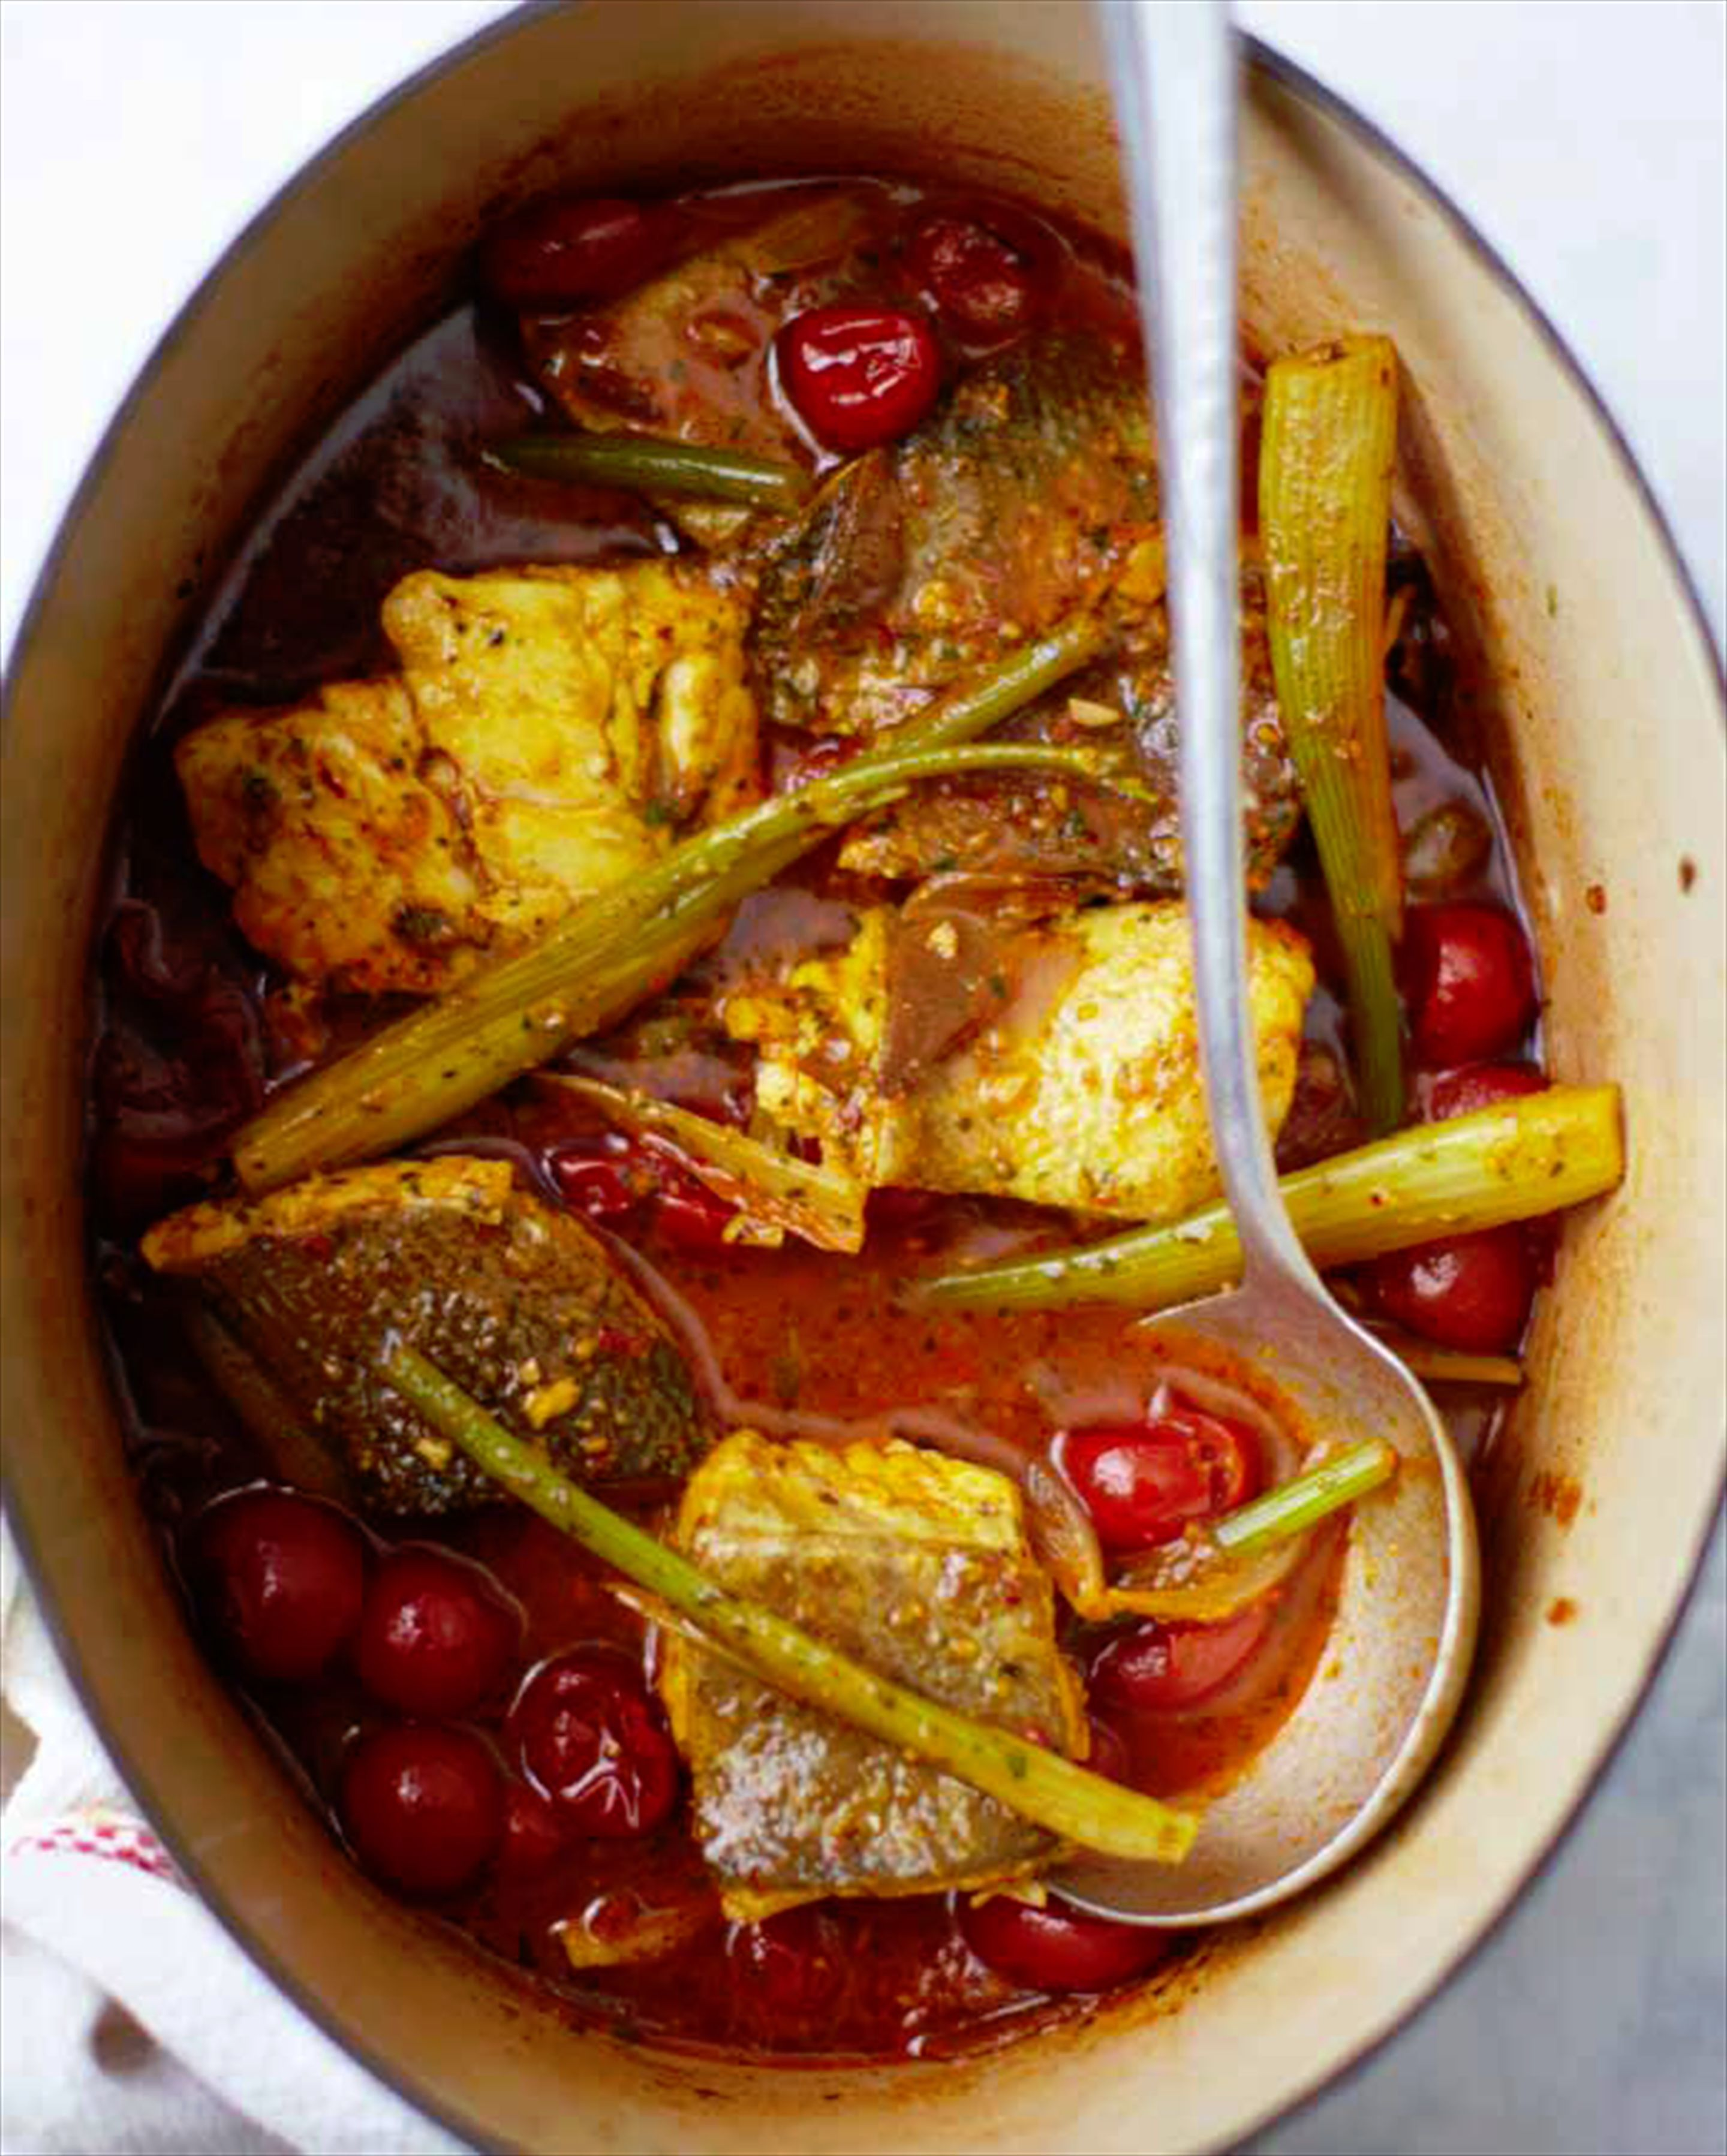 Fish & fennel tagine